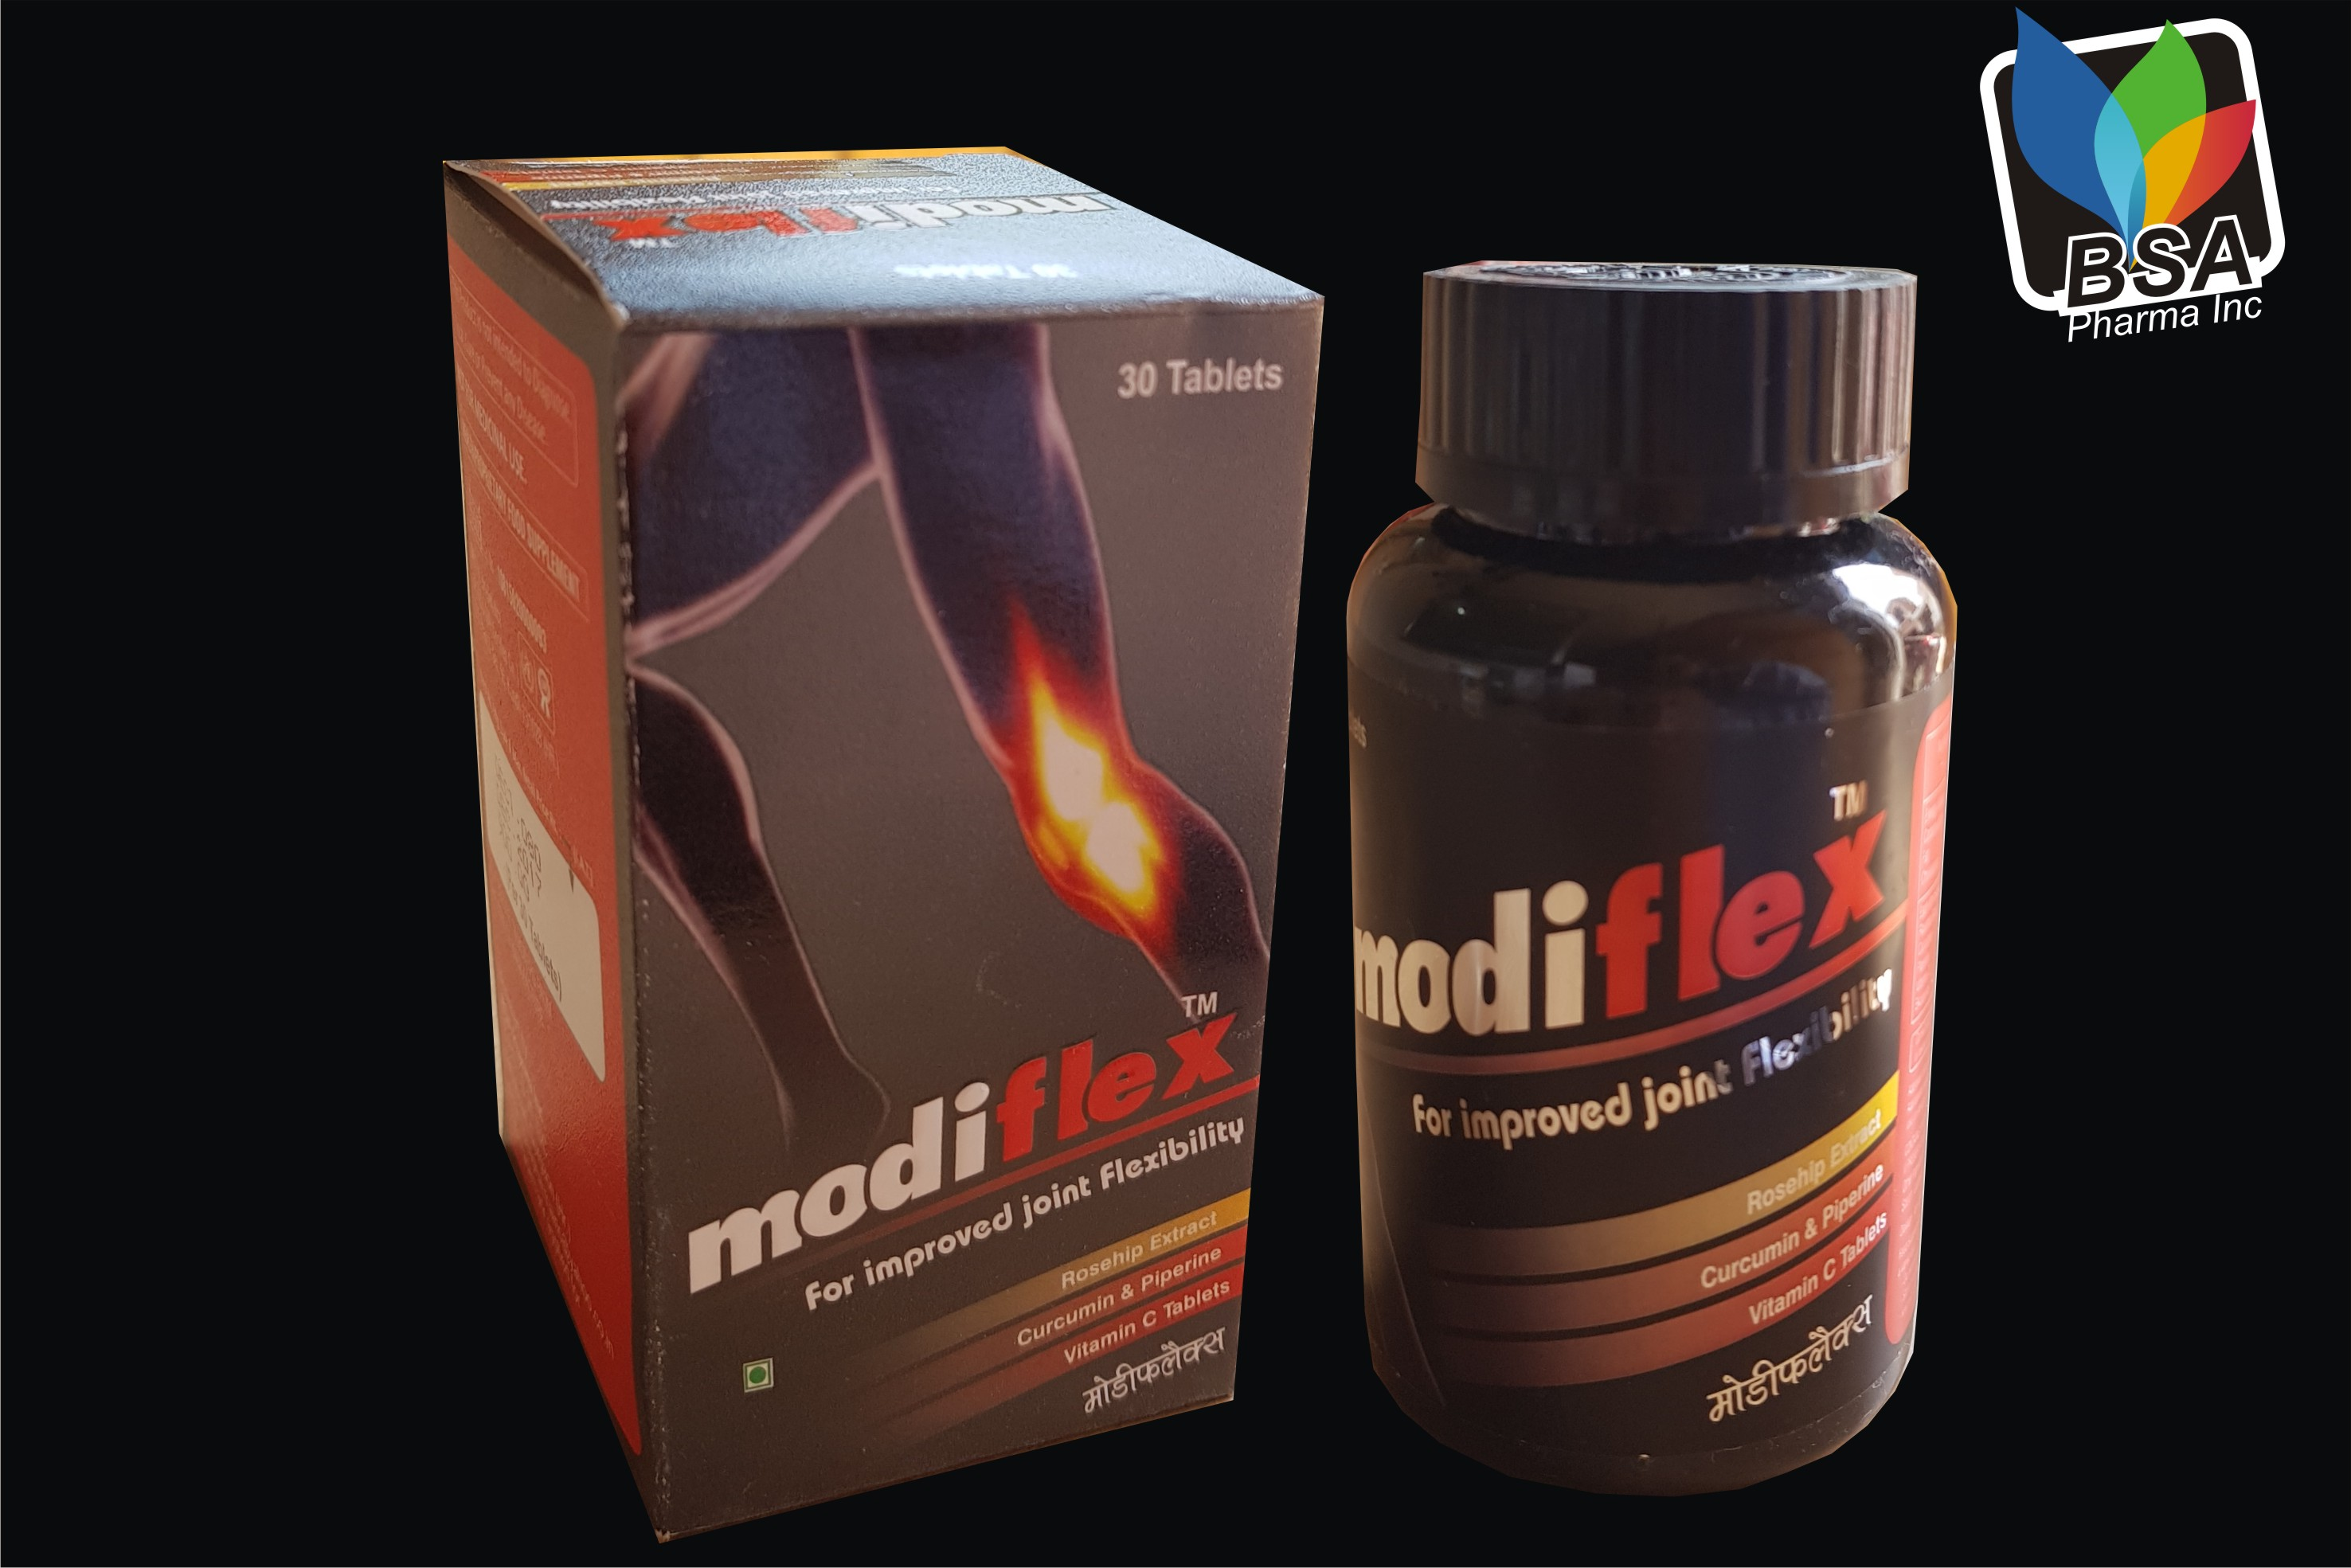 MODIFLEX bottle